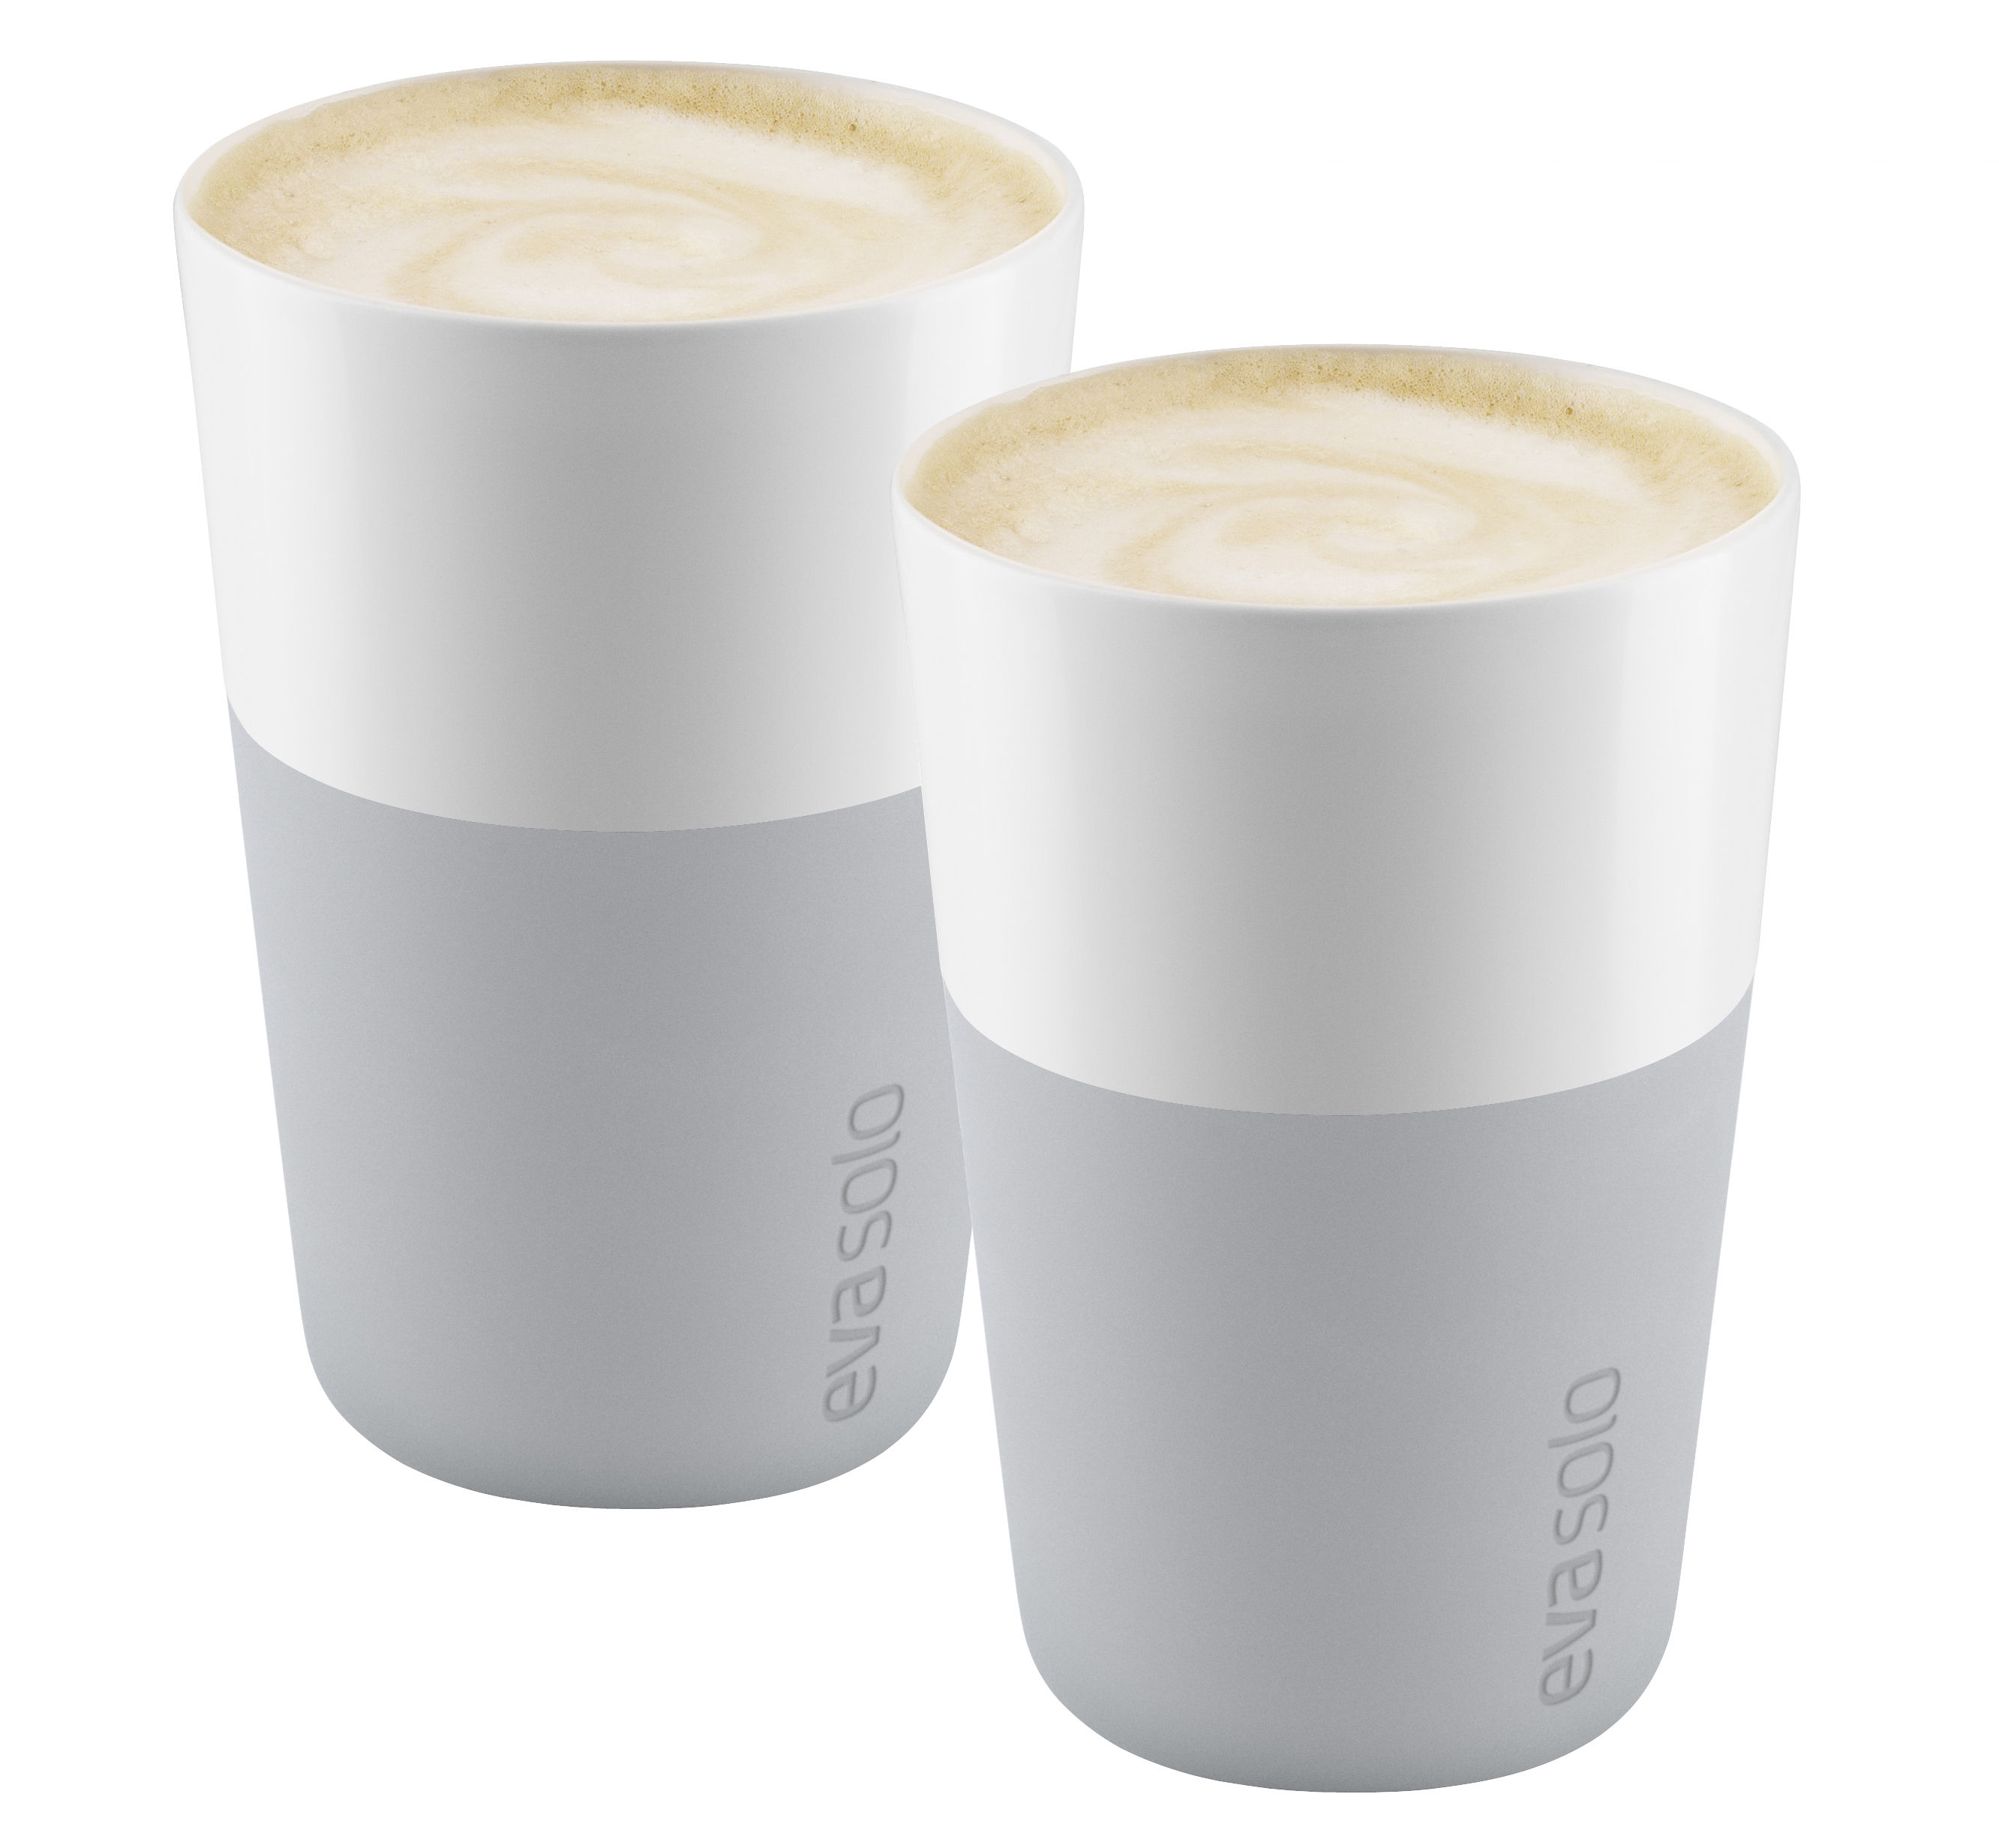 Caffe Latte Cafe Latte Mug Set Of 2 360 Ml By Eva Solo